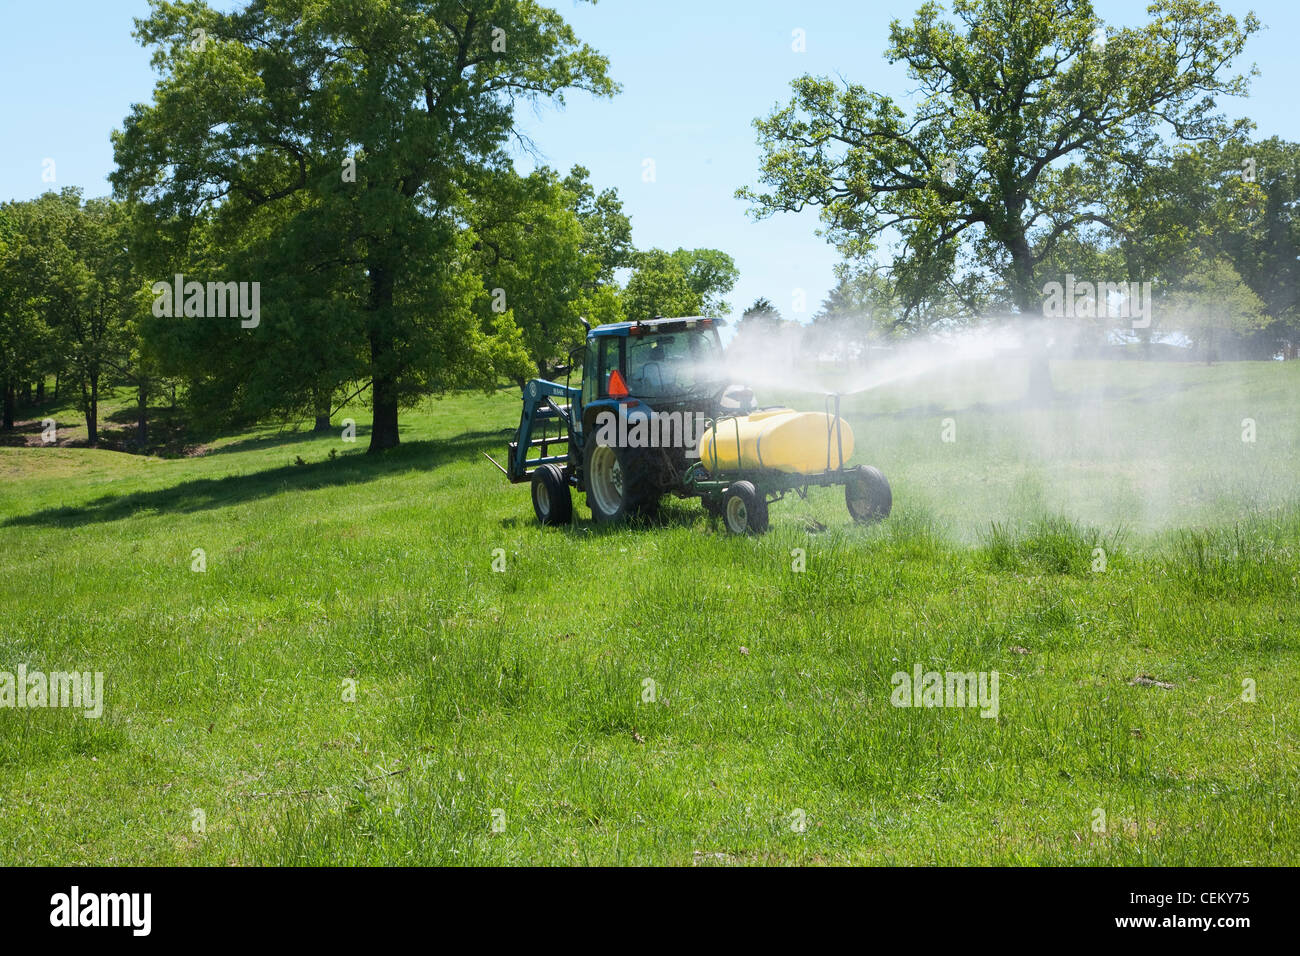 Spraying herbicide on a pasture used for grazing beef cattle. The herbicide is to control broadleaf weeds / Arkansas, - Stock Image